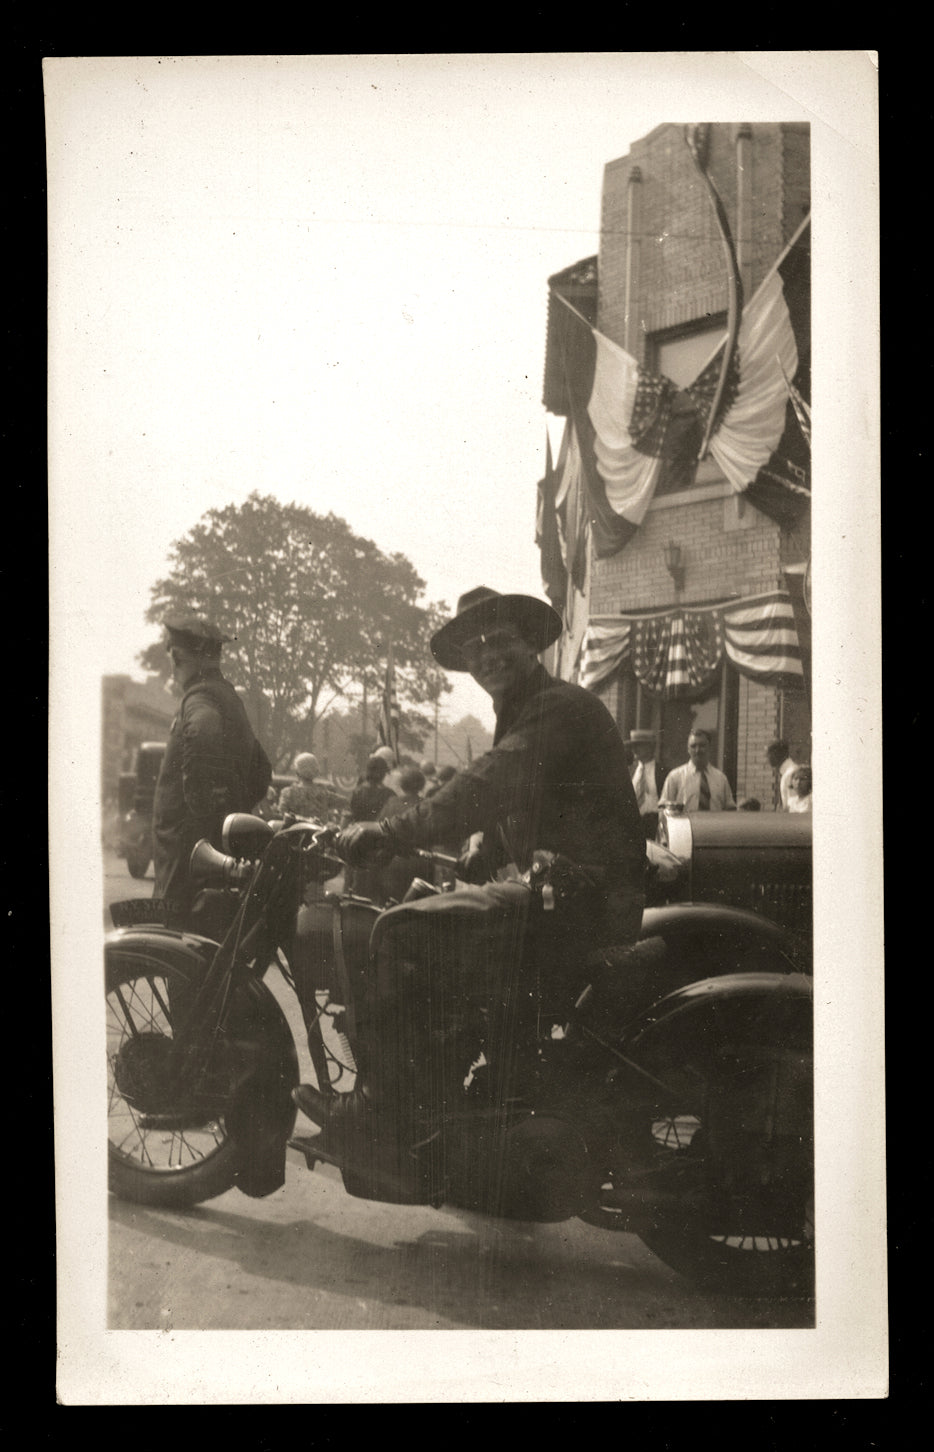 Armed New York State Police Officer Riding Motorcycle Vintage Snapshot Photo